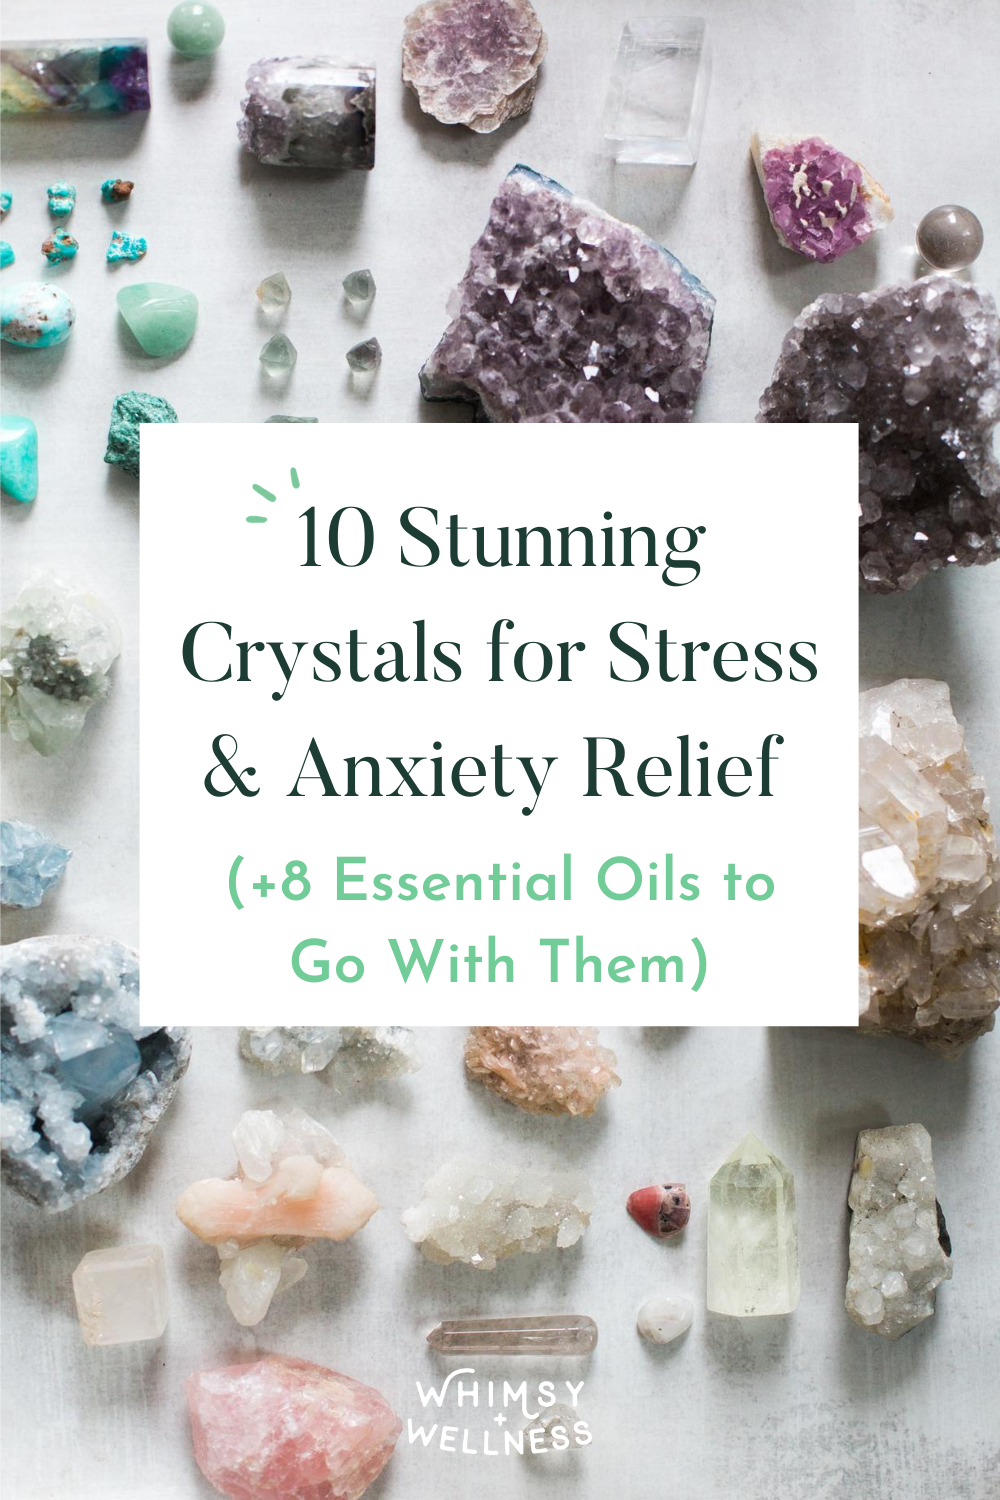 10 stunning crystal for stress & anxiety relief (+8 essential oils to go with them)